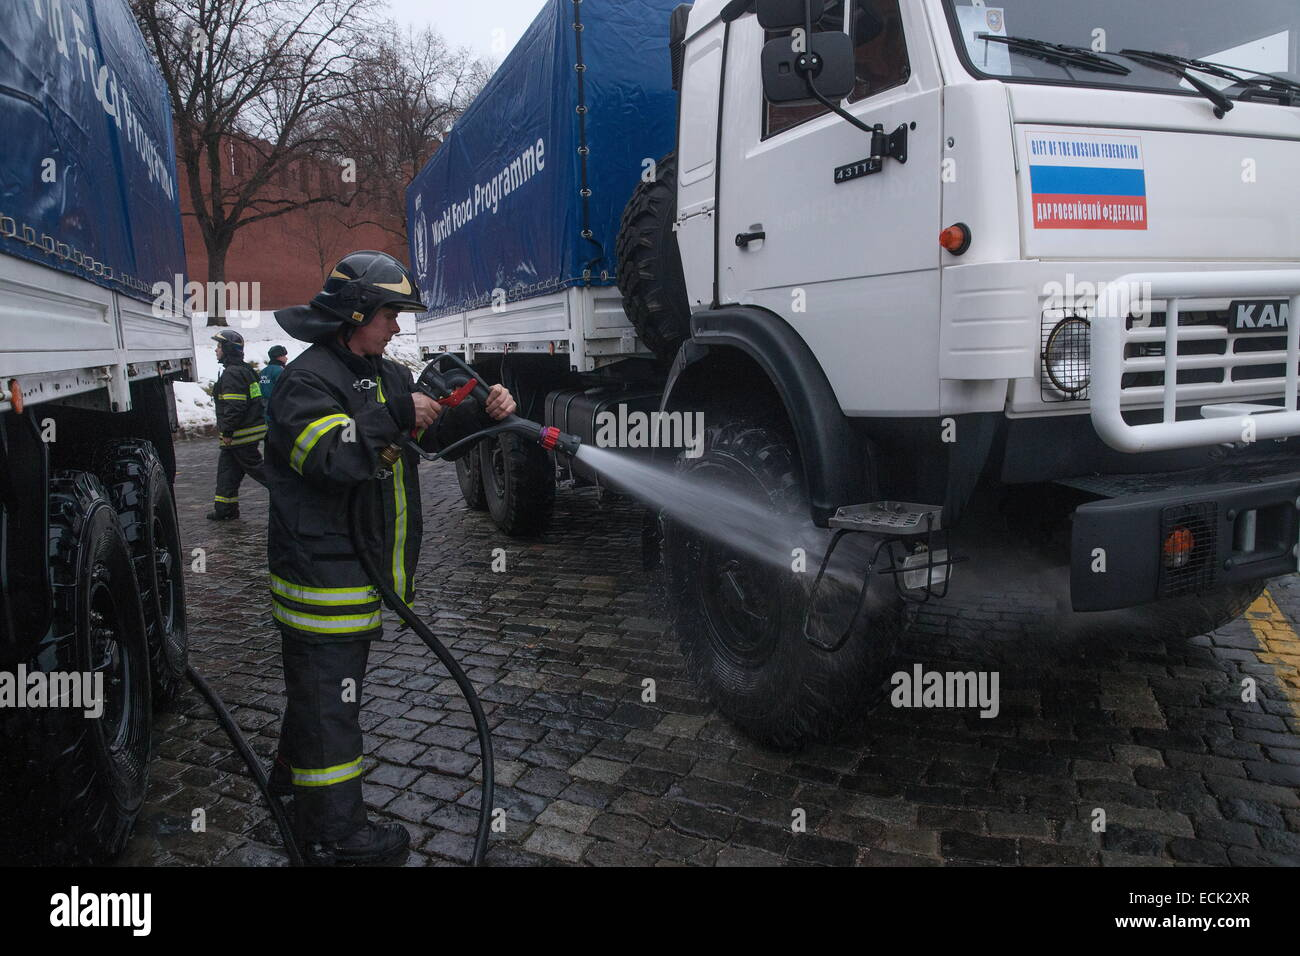 Moscow, Russia. 16th Dec, 2014. Russia's emergency situations ministry officer washes a truck ahead of a KAMAZ - Stock Image